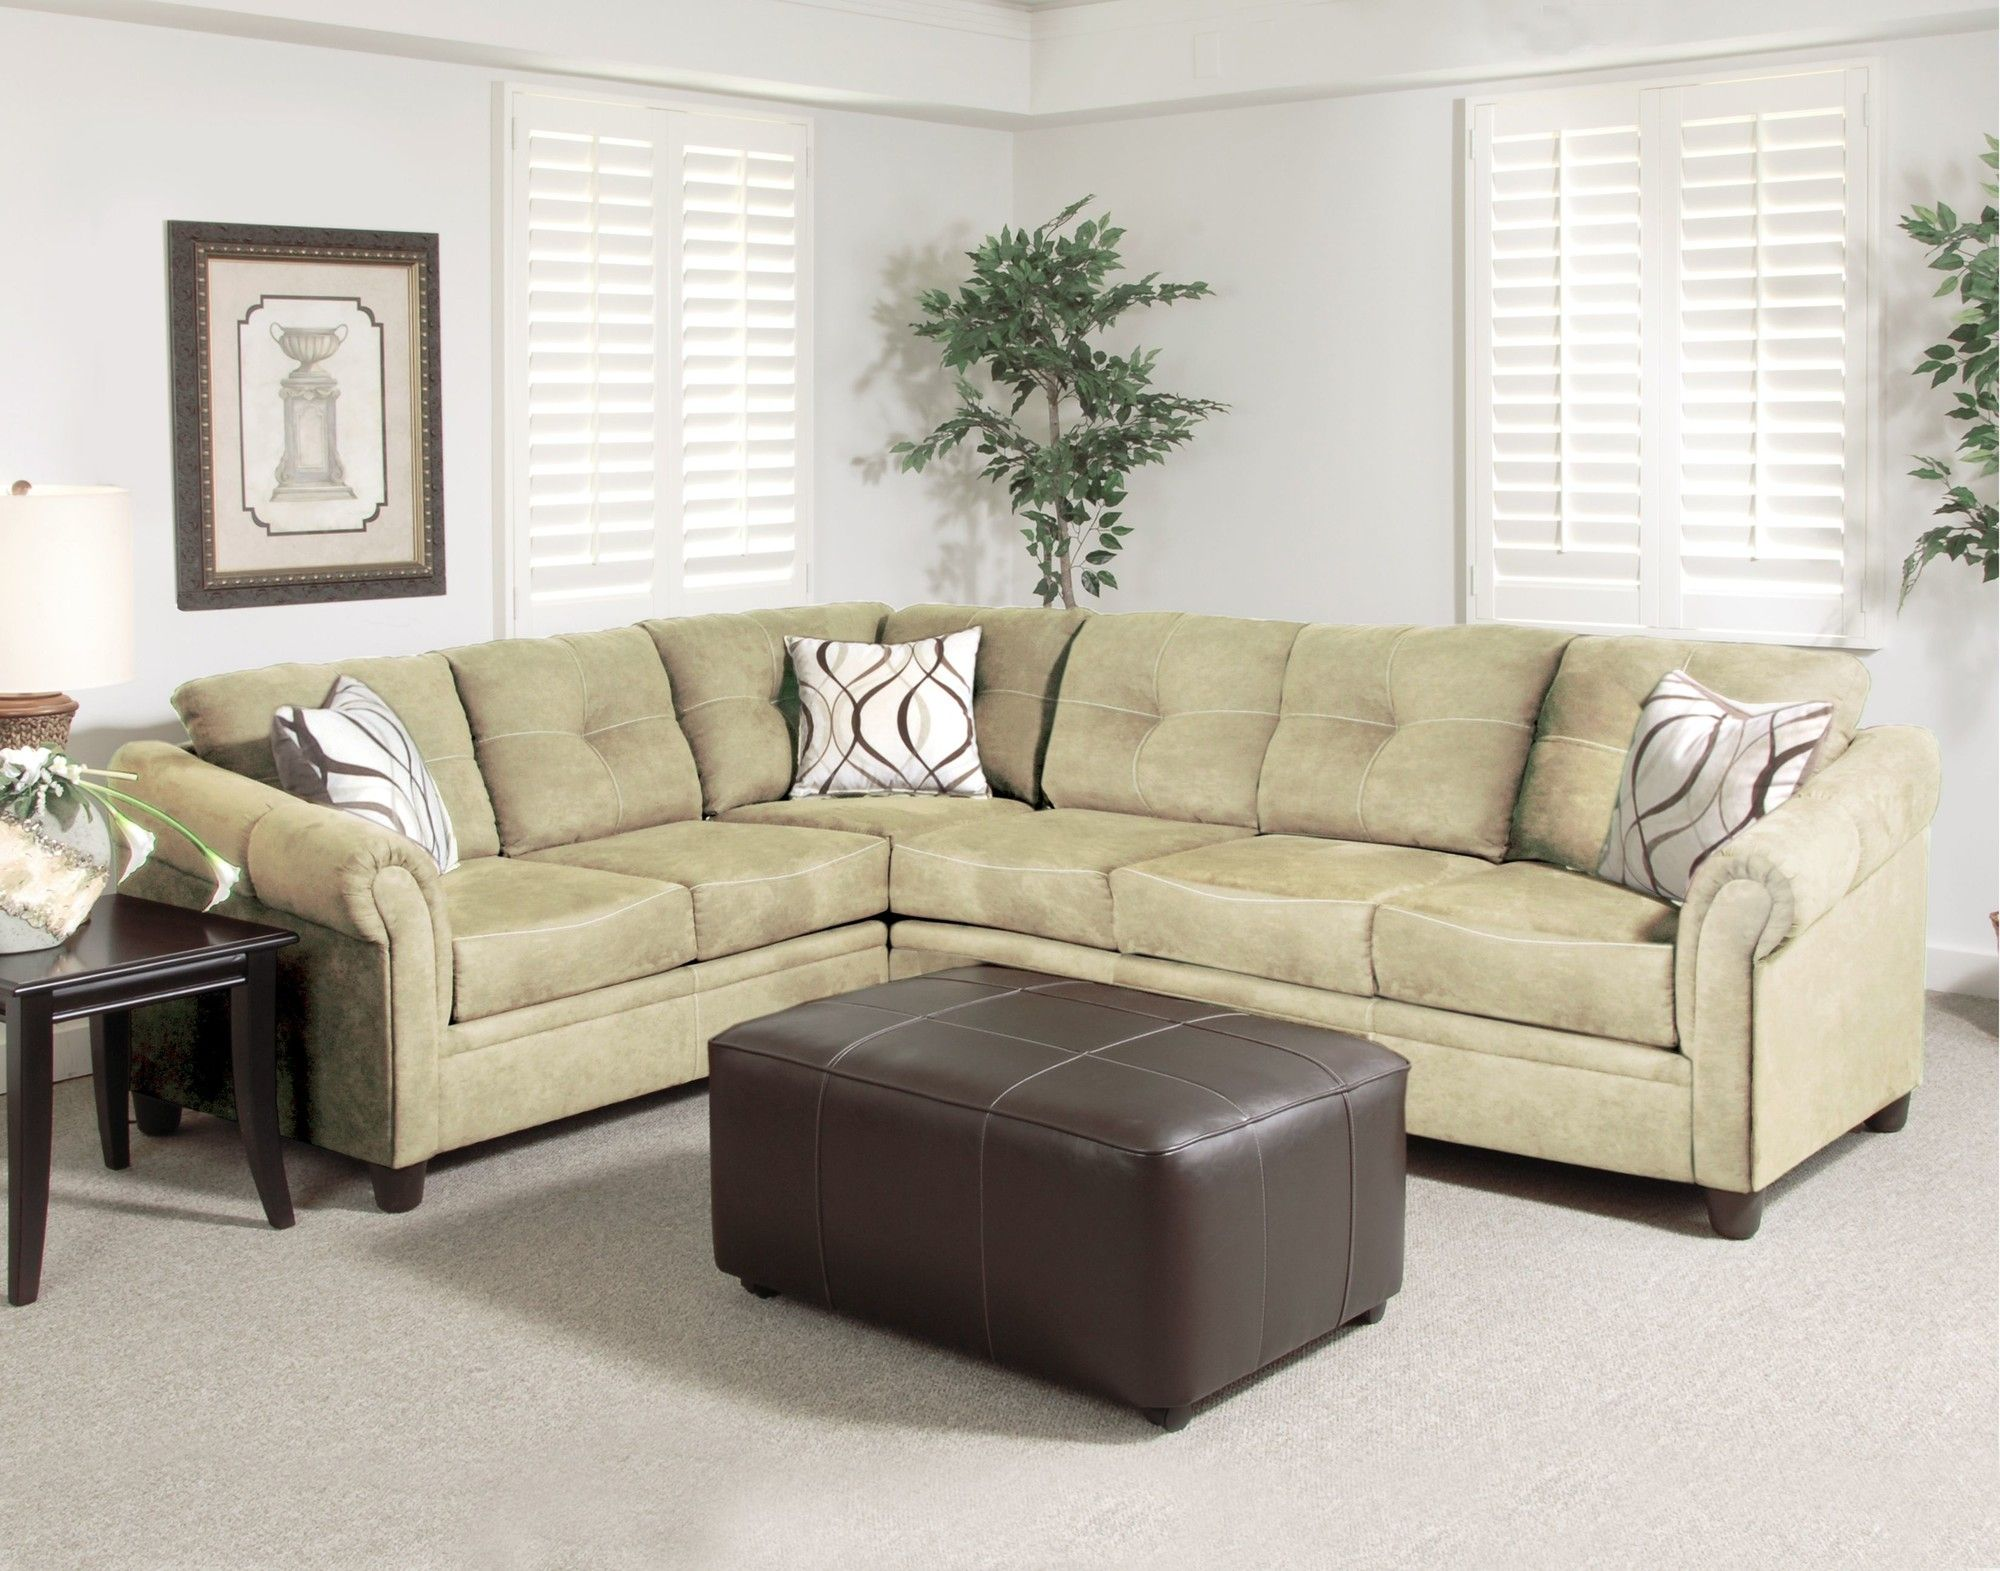 Serta Upholstery Sectional Sofa & Reviews | Wayfair